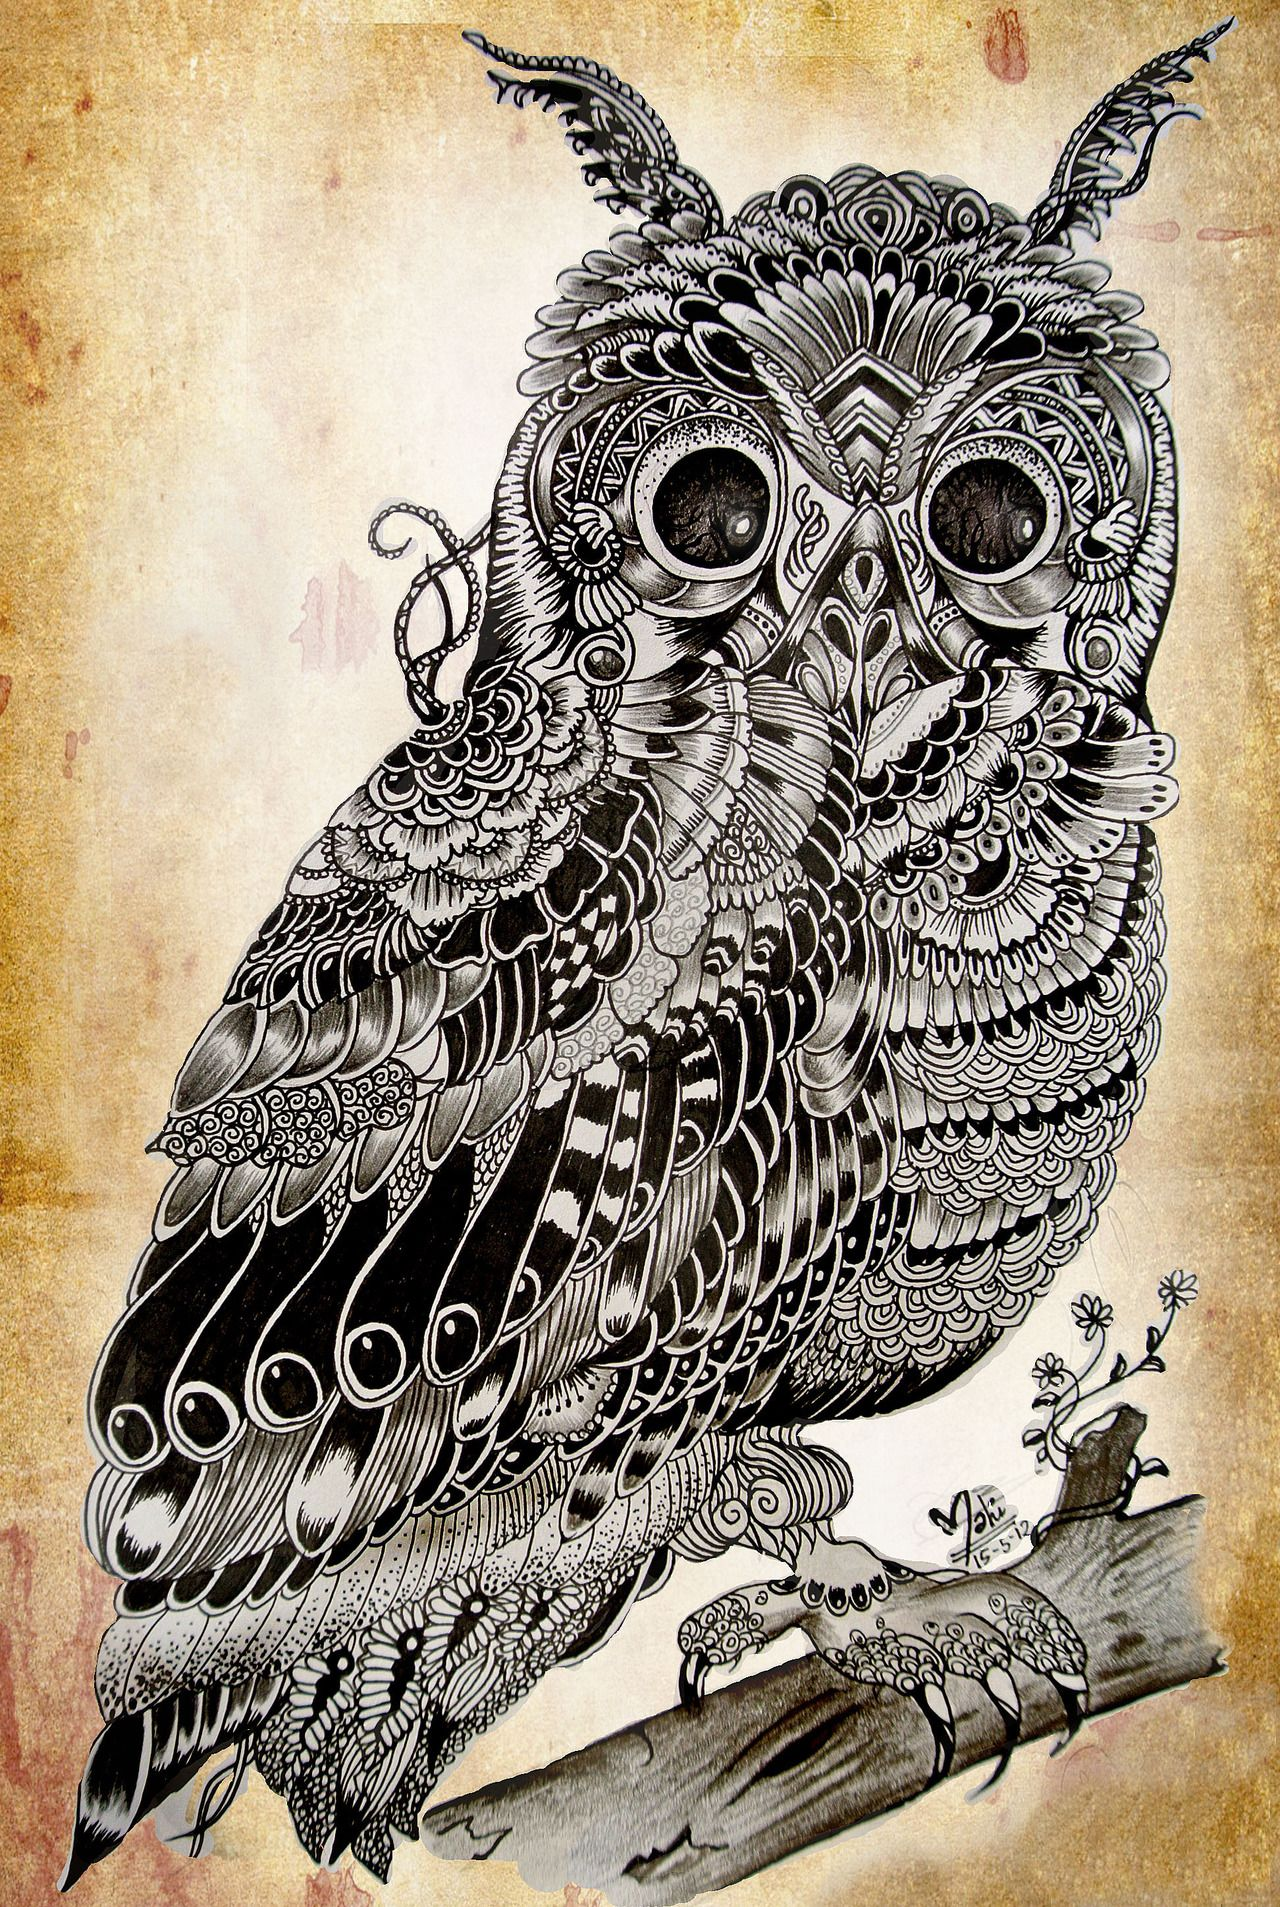 ian mcarthur inspired by mahi check out my artworks here tattoos pinterest owl artwork. Black Bedroom Furniture Sets. Home Design Ideas